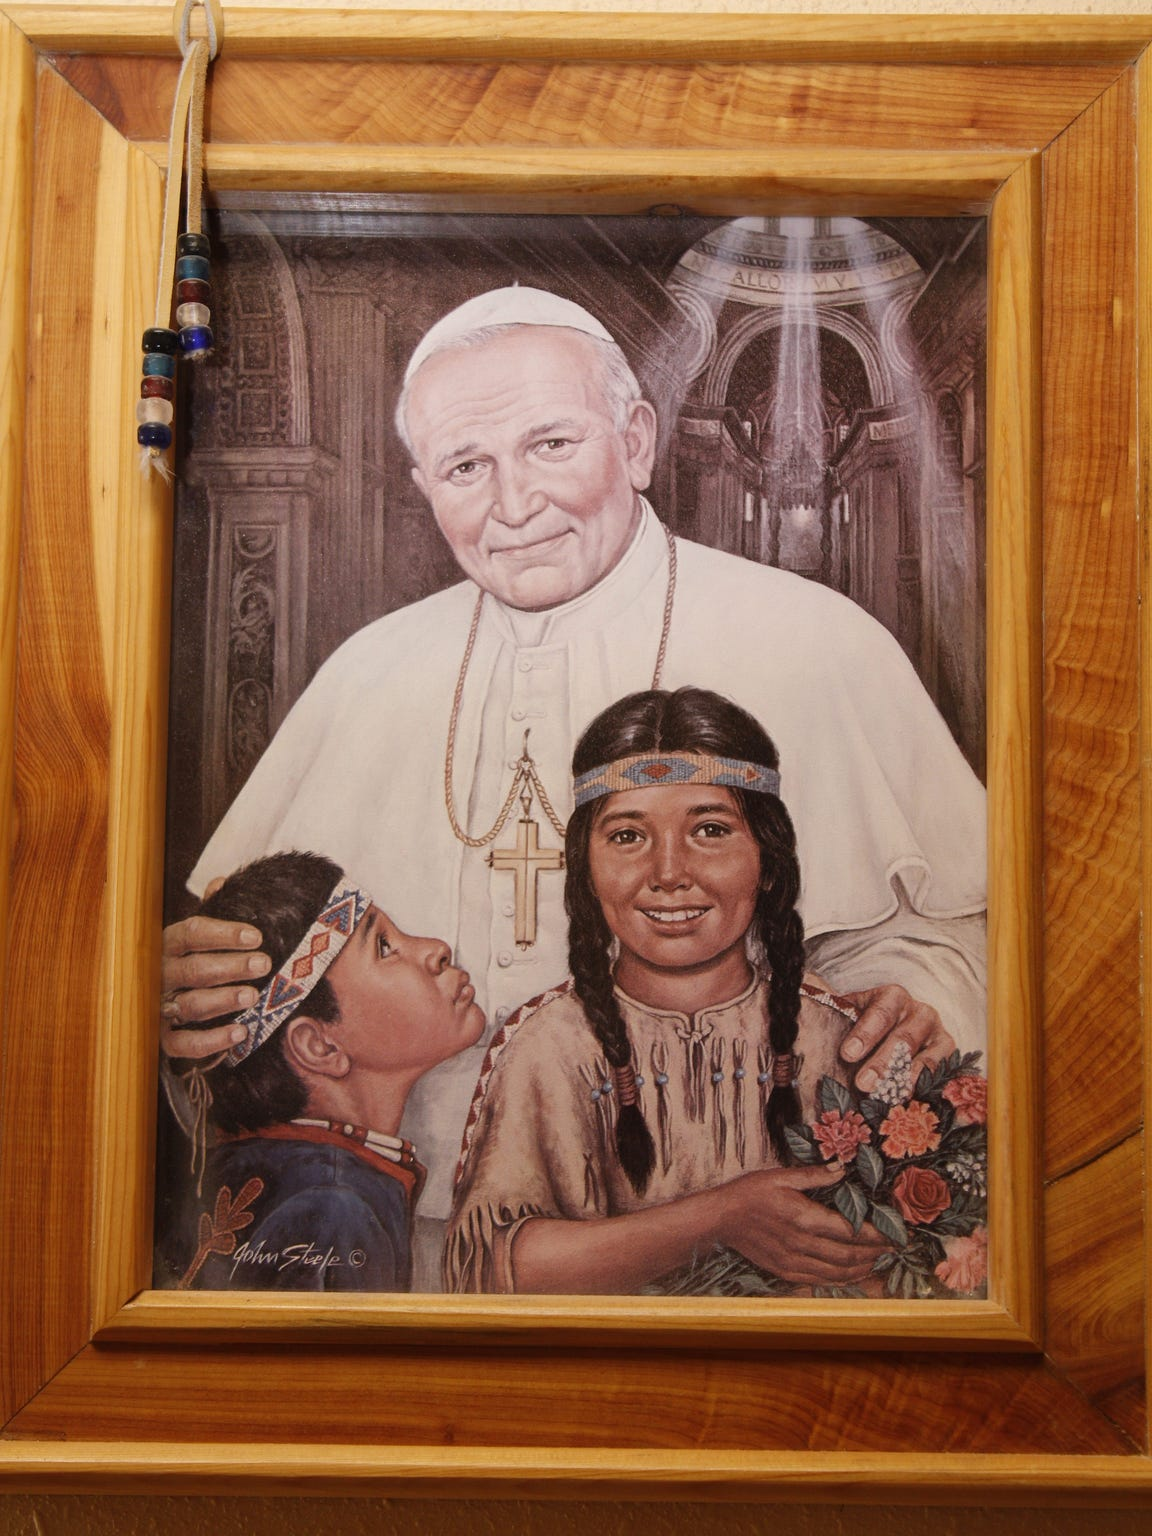 Children are reflected throughout portraits, figurines, stained glass windows and other elements of Catholicism. Pope John Paul II papacy suffered from his lack of timely response to child sexual abuse allegations within the Catholic Church.